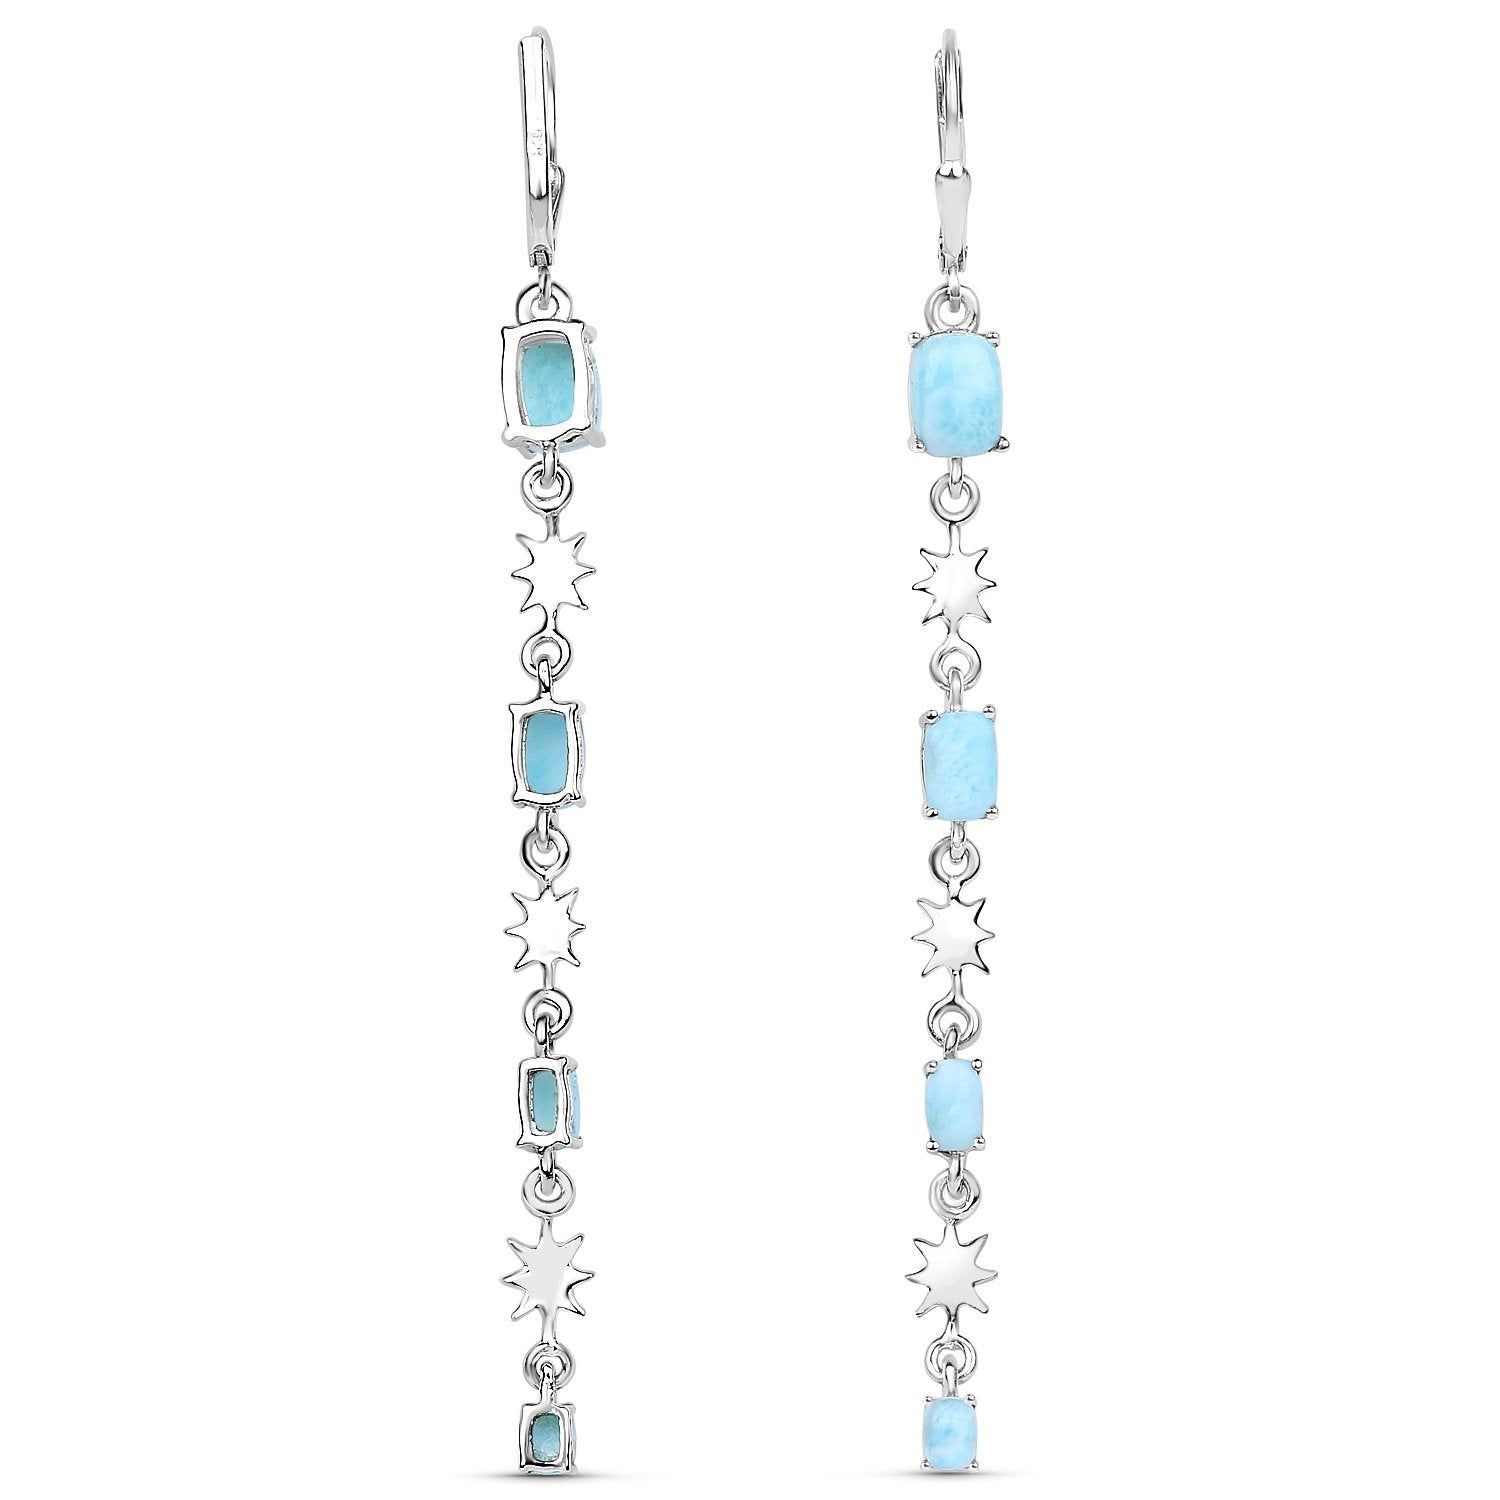 LoveHuang 3.87 Carats Genuine Larimar Dangle Earrings Solid .925 Sterling Silver With Rhodium Plating